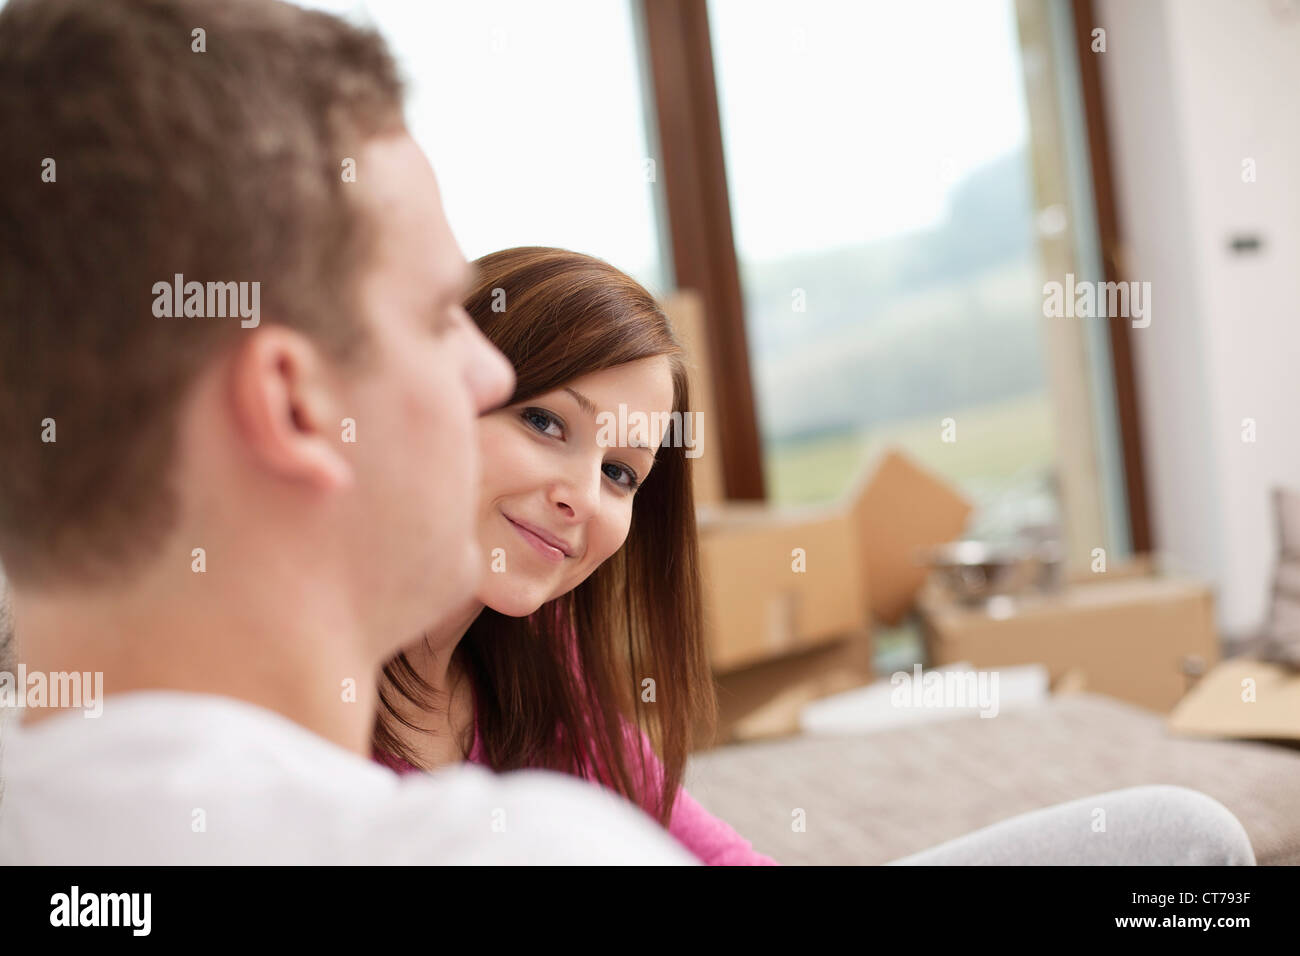 portrait of young woman in new flat - Stock Image